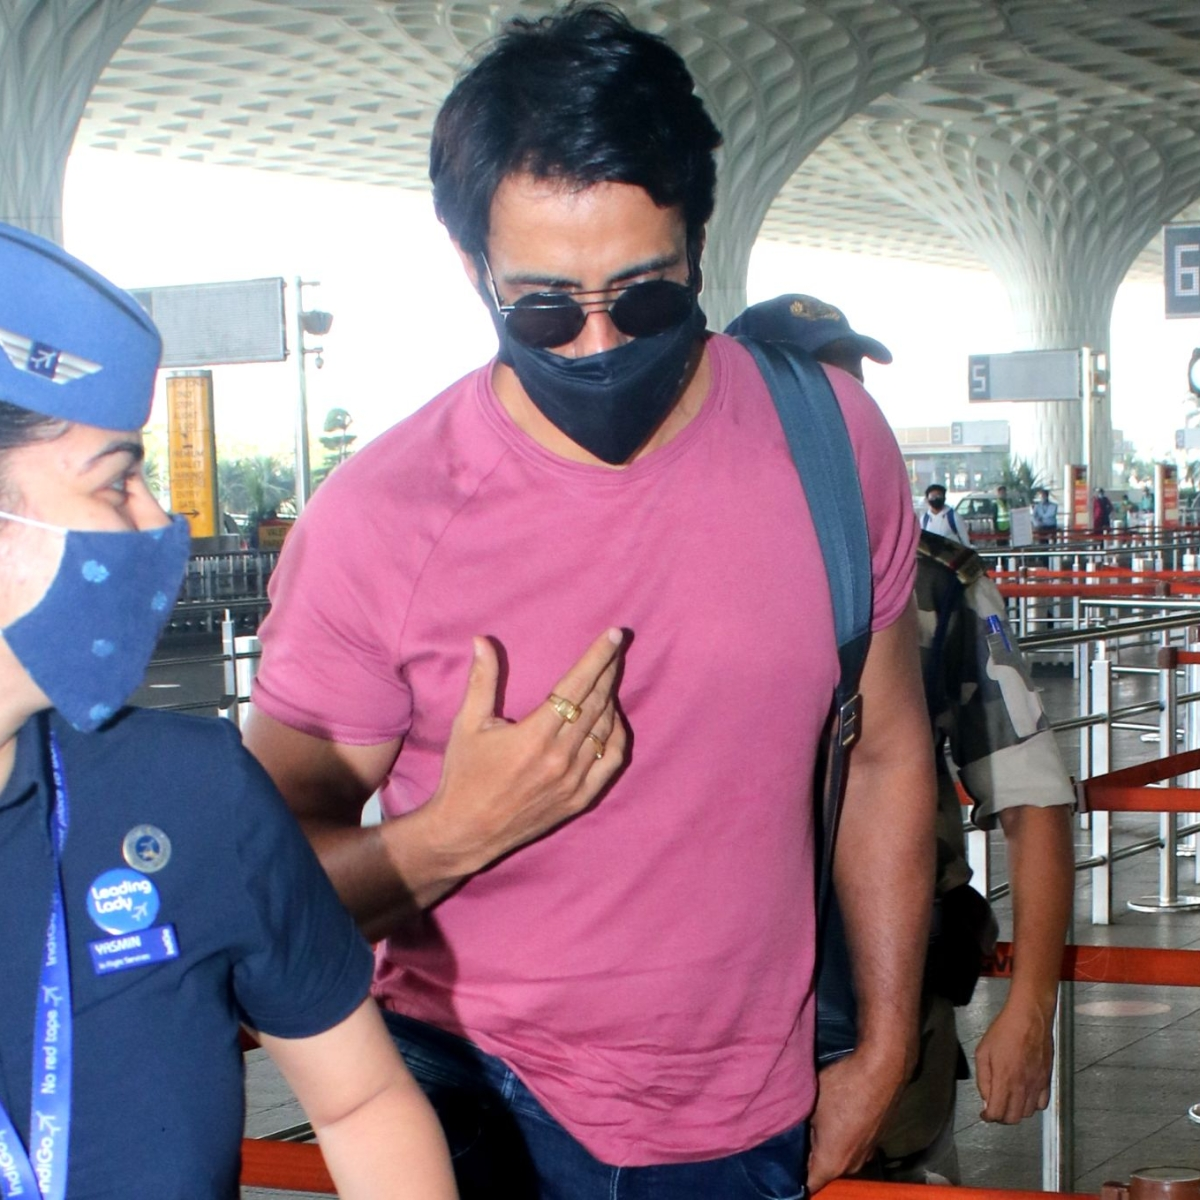 Watch: COVID-19 negative Sonu Sood obliges for a selfie with flight attendant at Mumbai airport